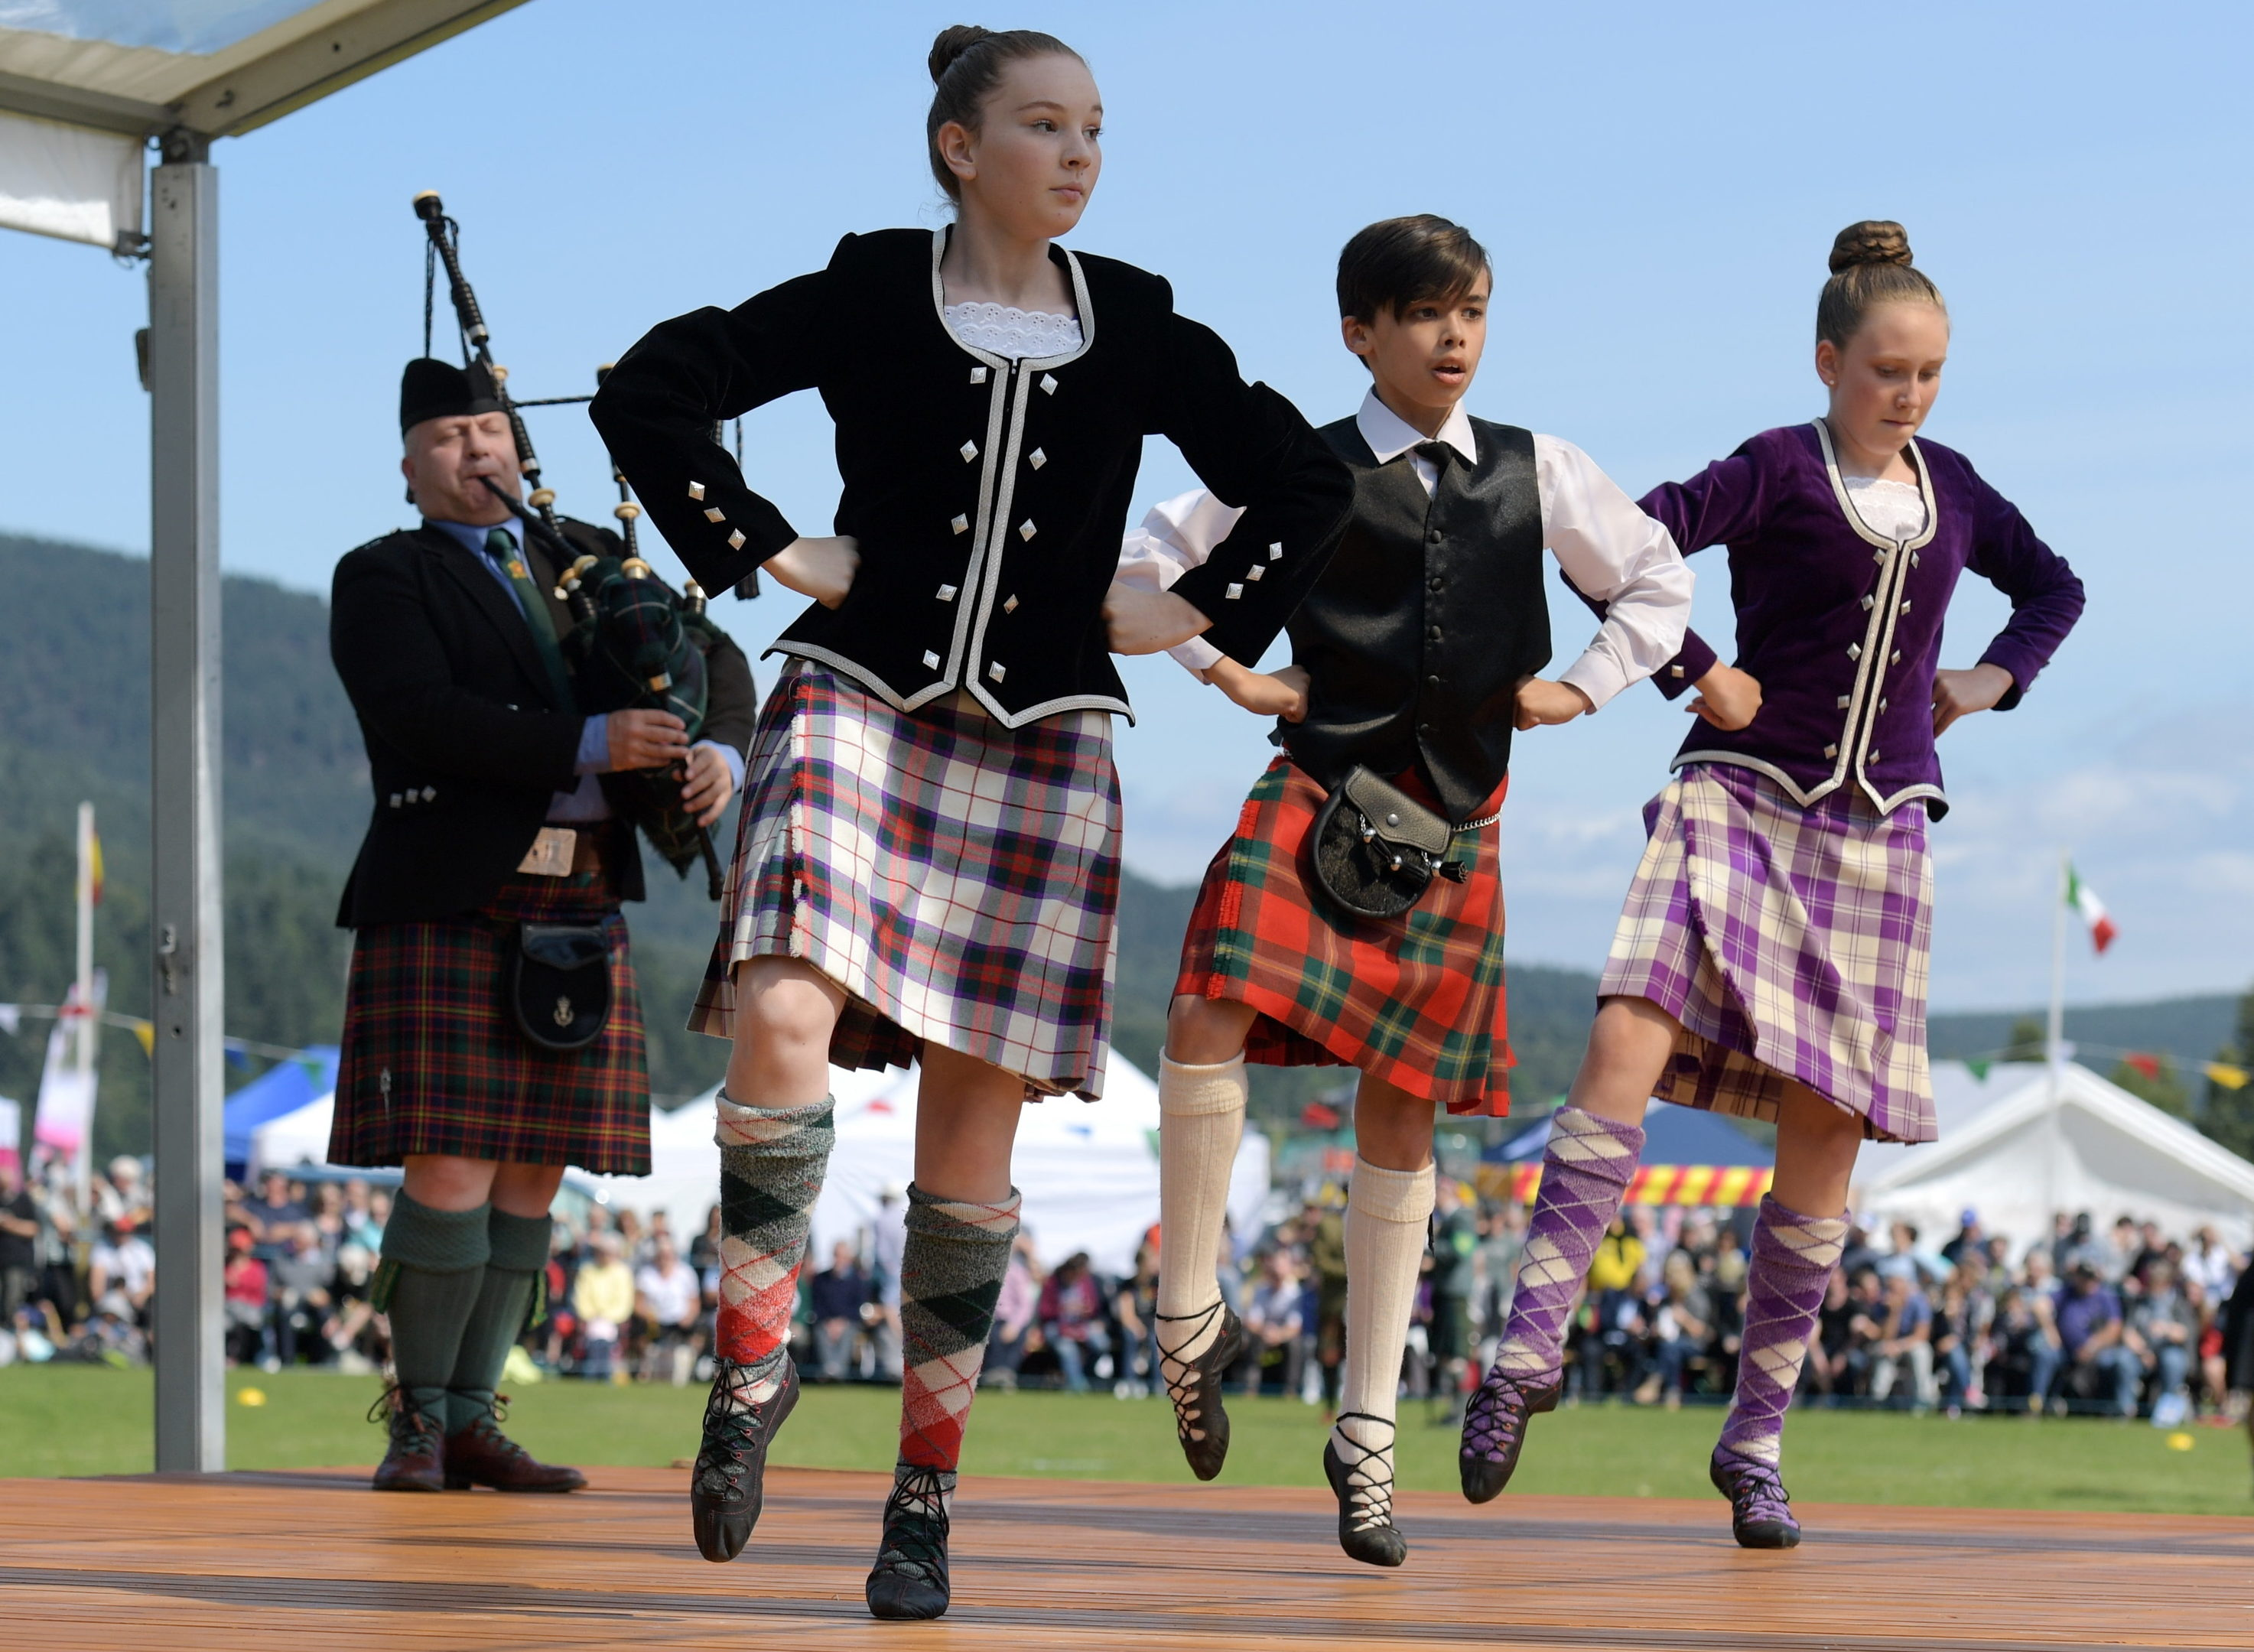 Local traders invited to Aberdeen Highland Games